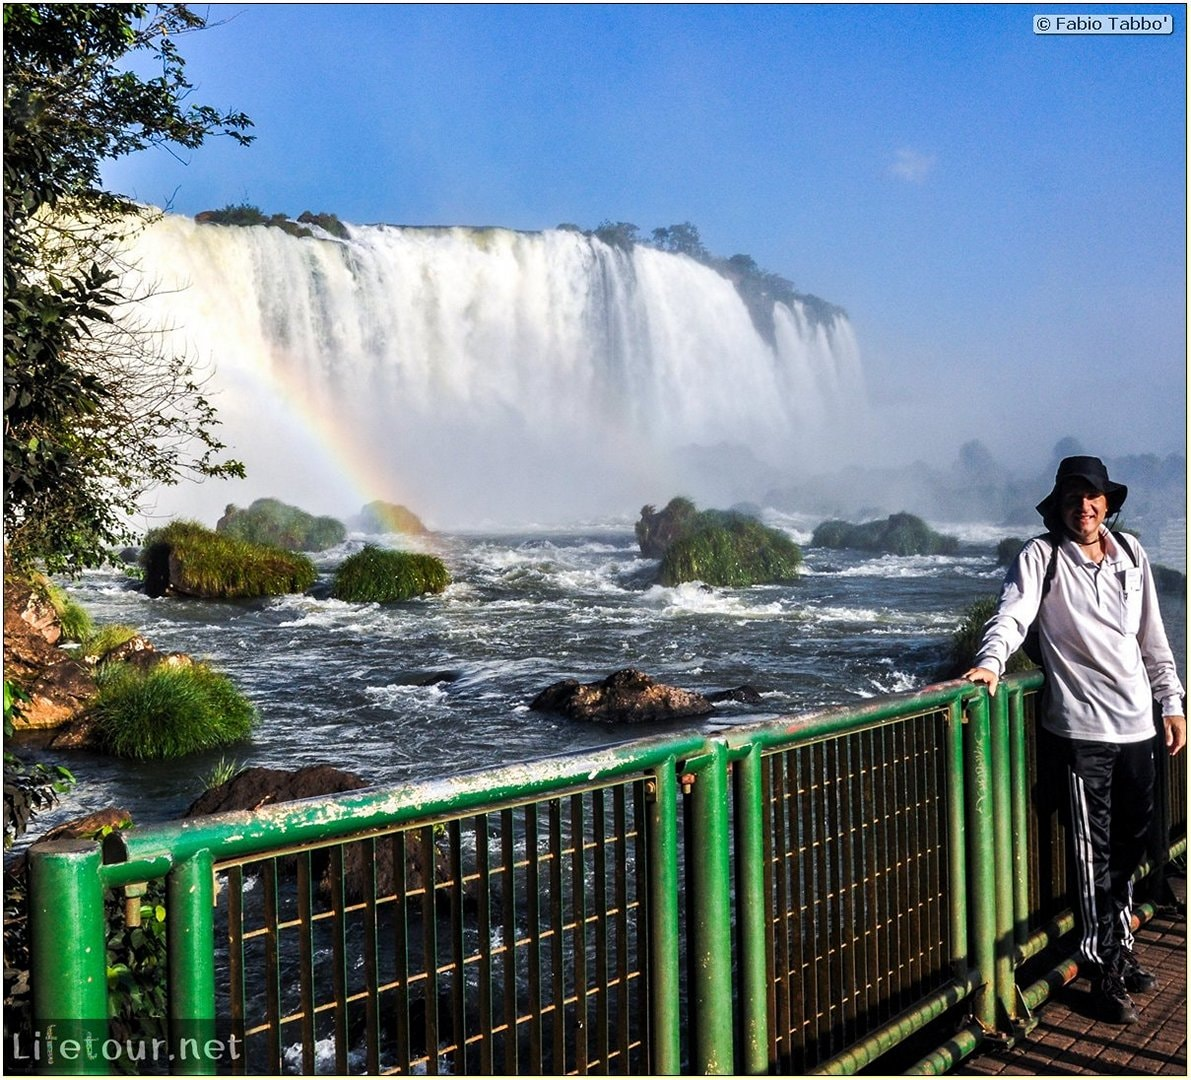 Fabio's LifeTour - Brazil (2015 April-June and October) - Iguazu falls - The falls - 8143 cover